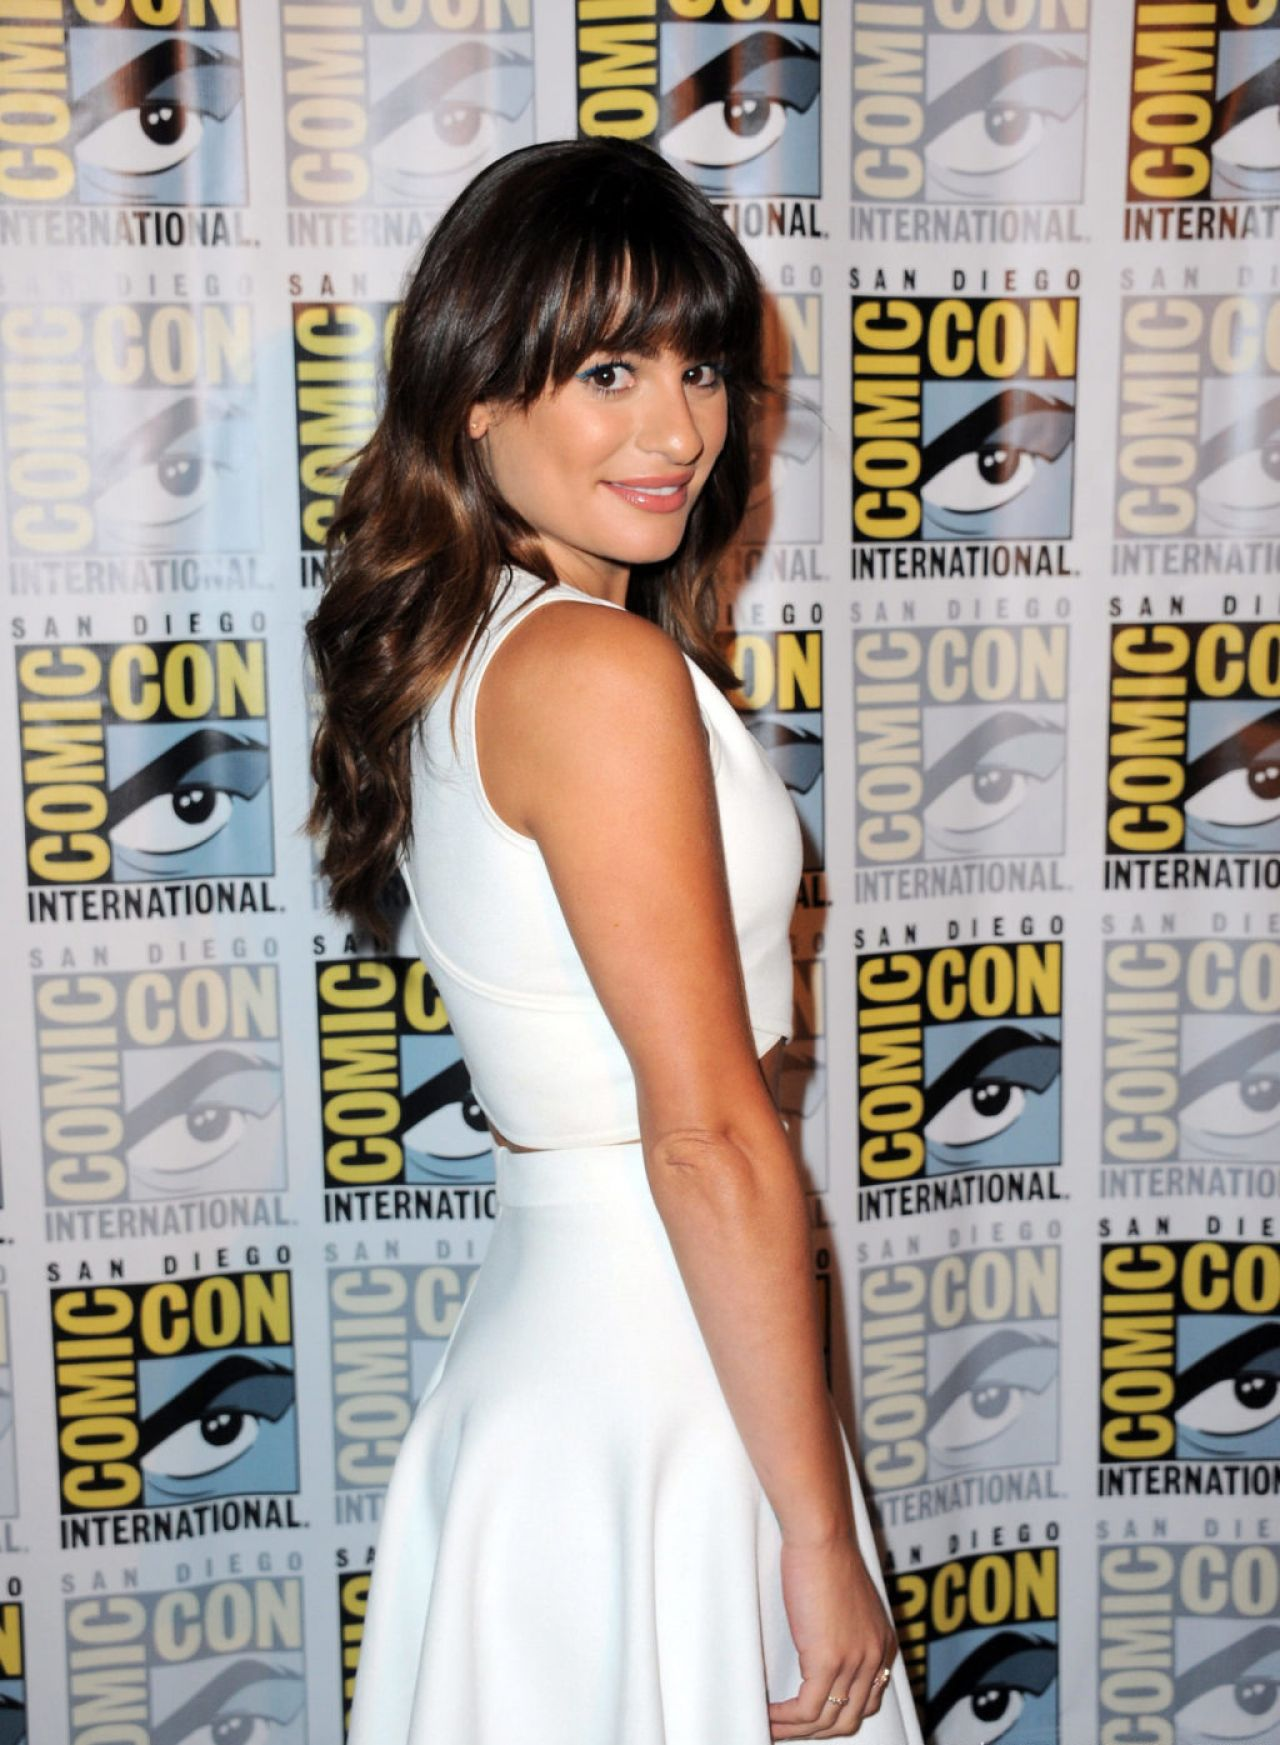 lea-michele-american-horror-story-and-scream-queens-panel-at-comic-con-international-2015_3